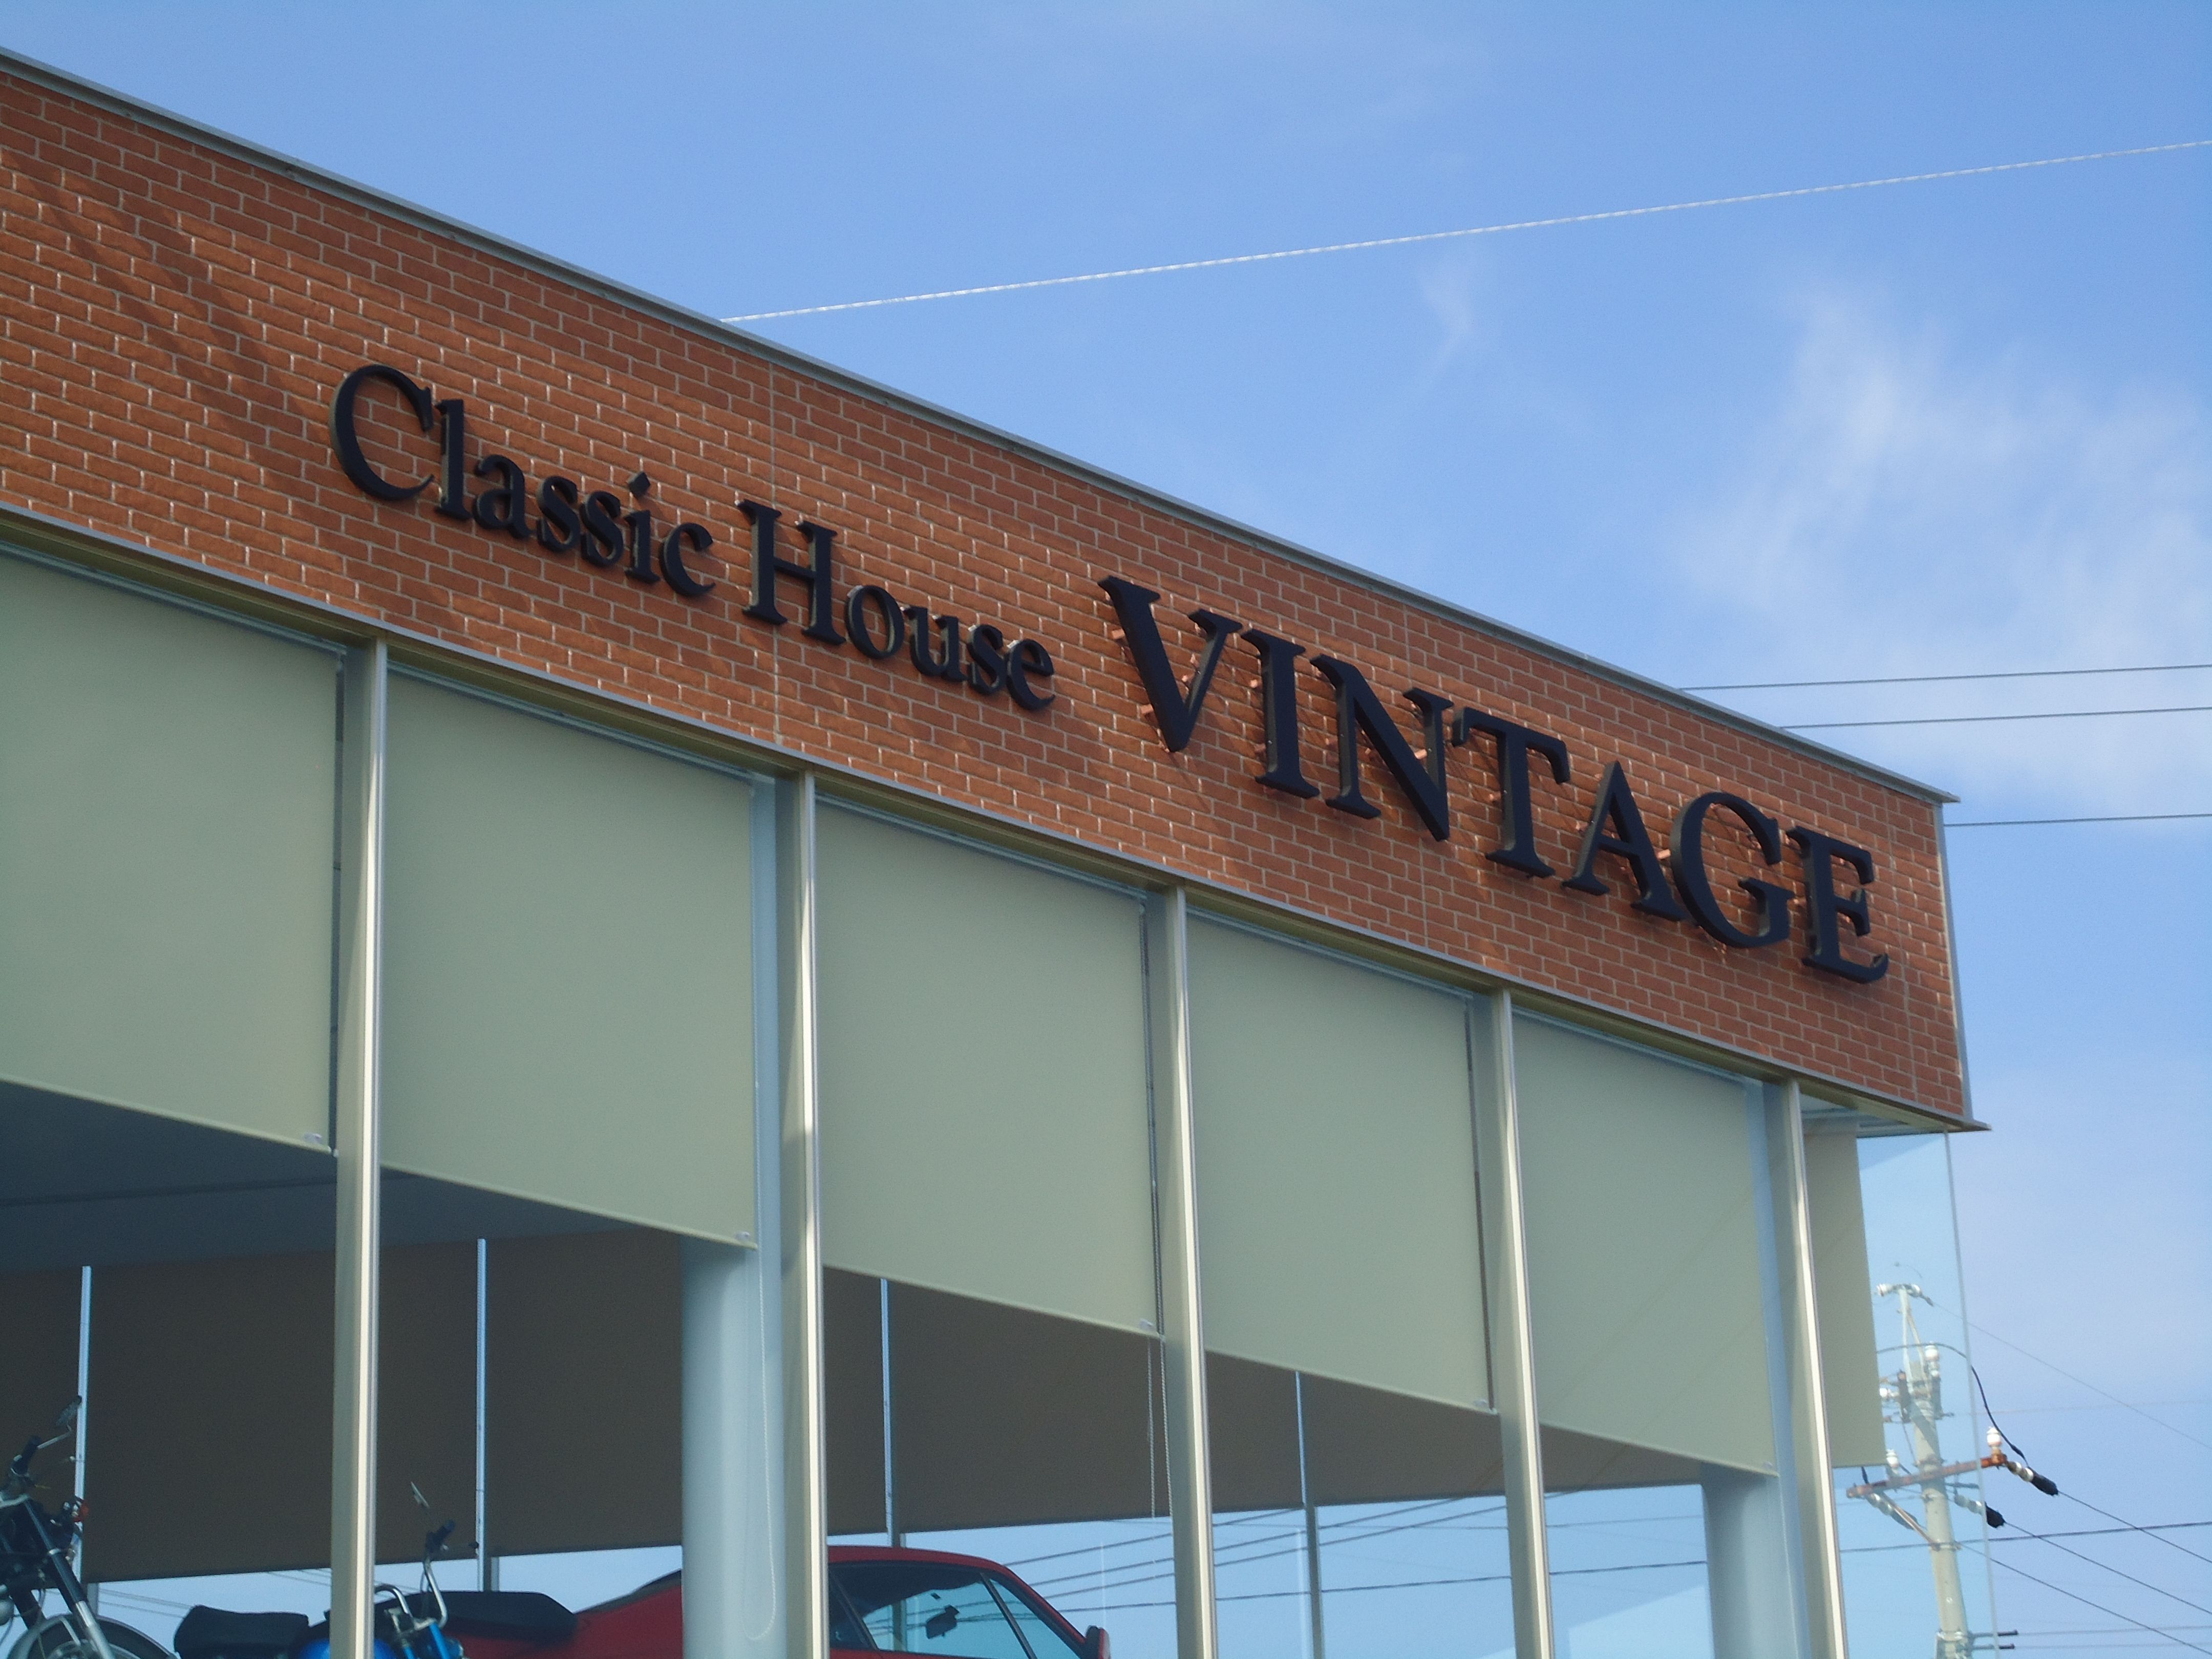 CLASSIC HOUSE VINTAGE